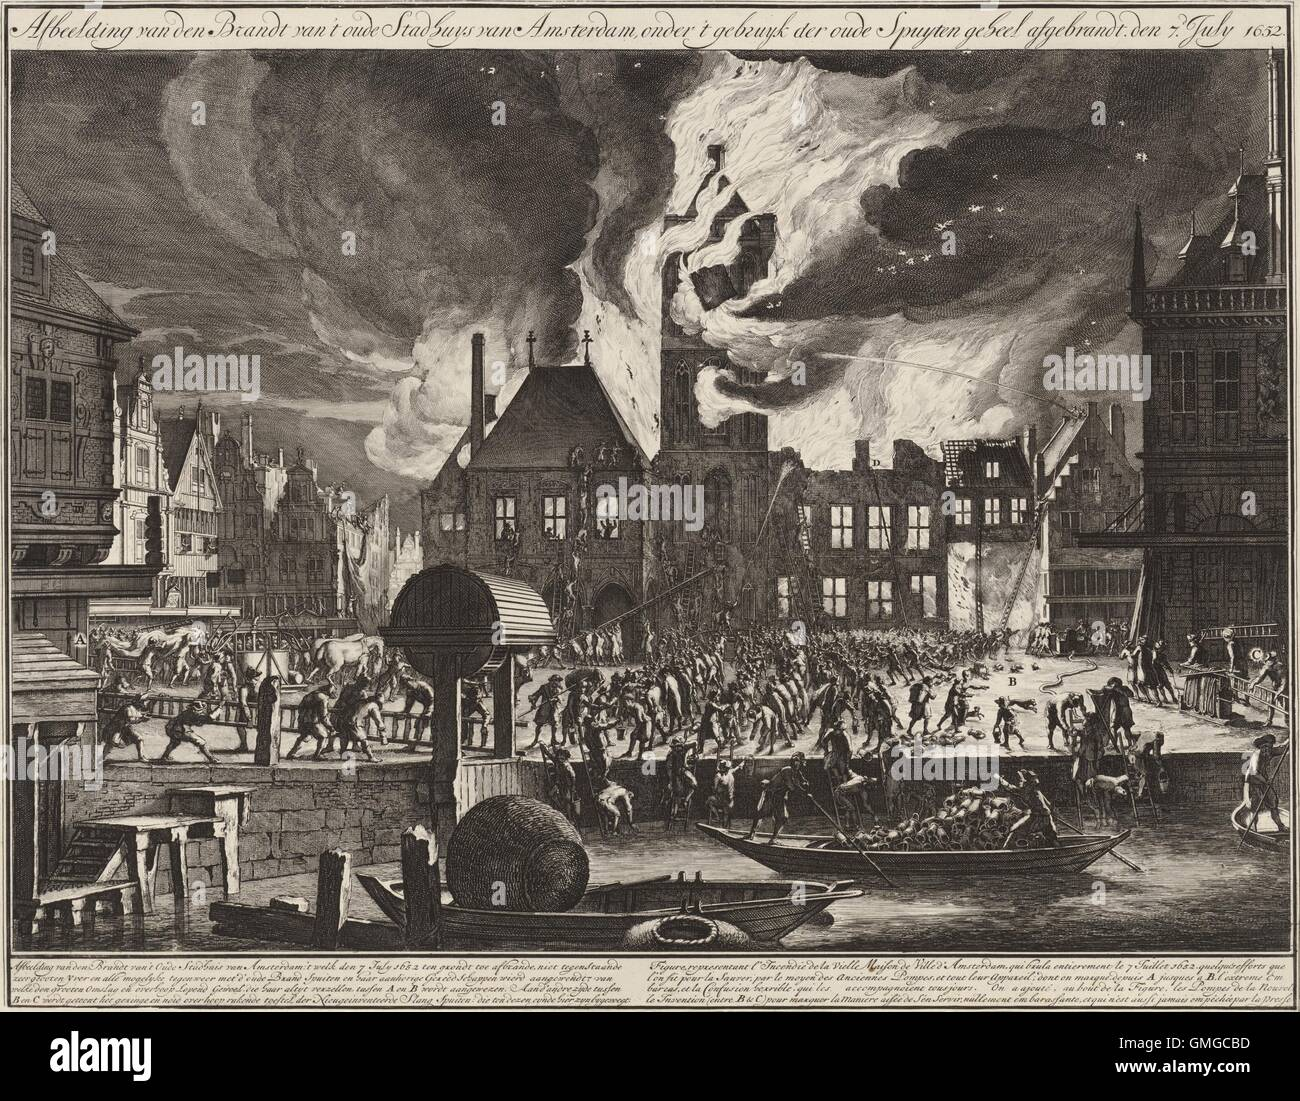 The Fire in the Old Town Hall in Amsterdam, 1652, by Jan van der Heyden,  1688-90, Dutch print. Engraving and etching on paper.